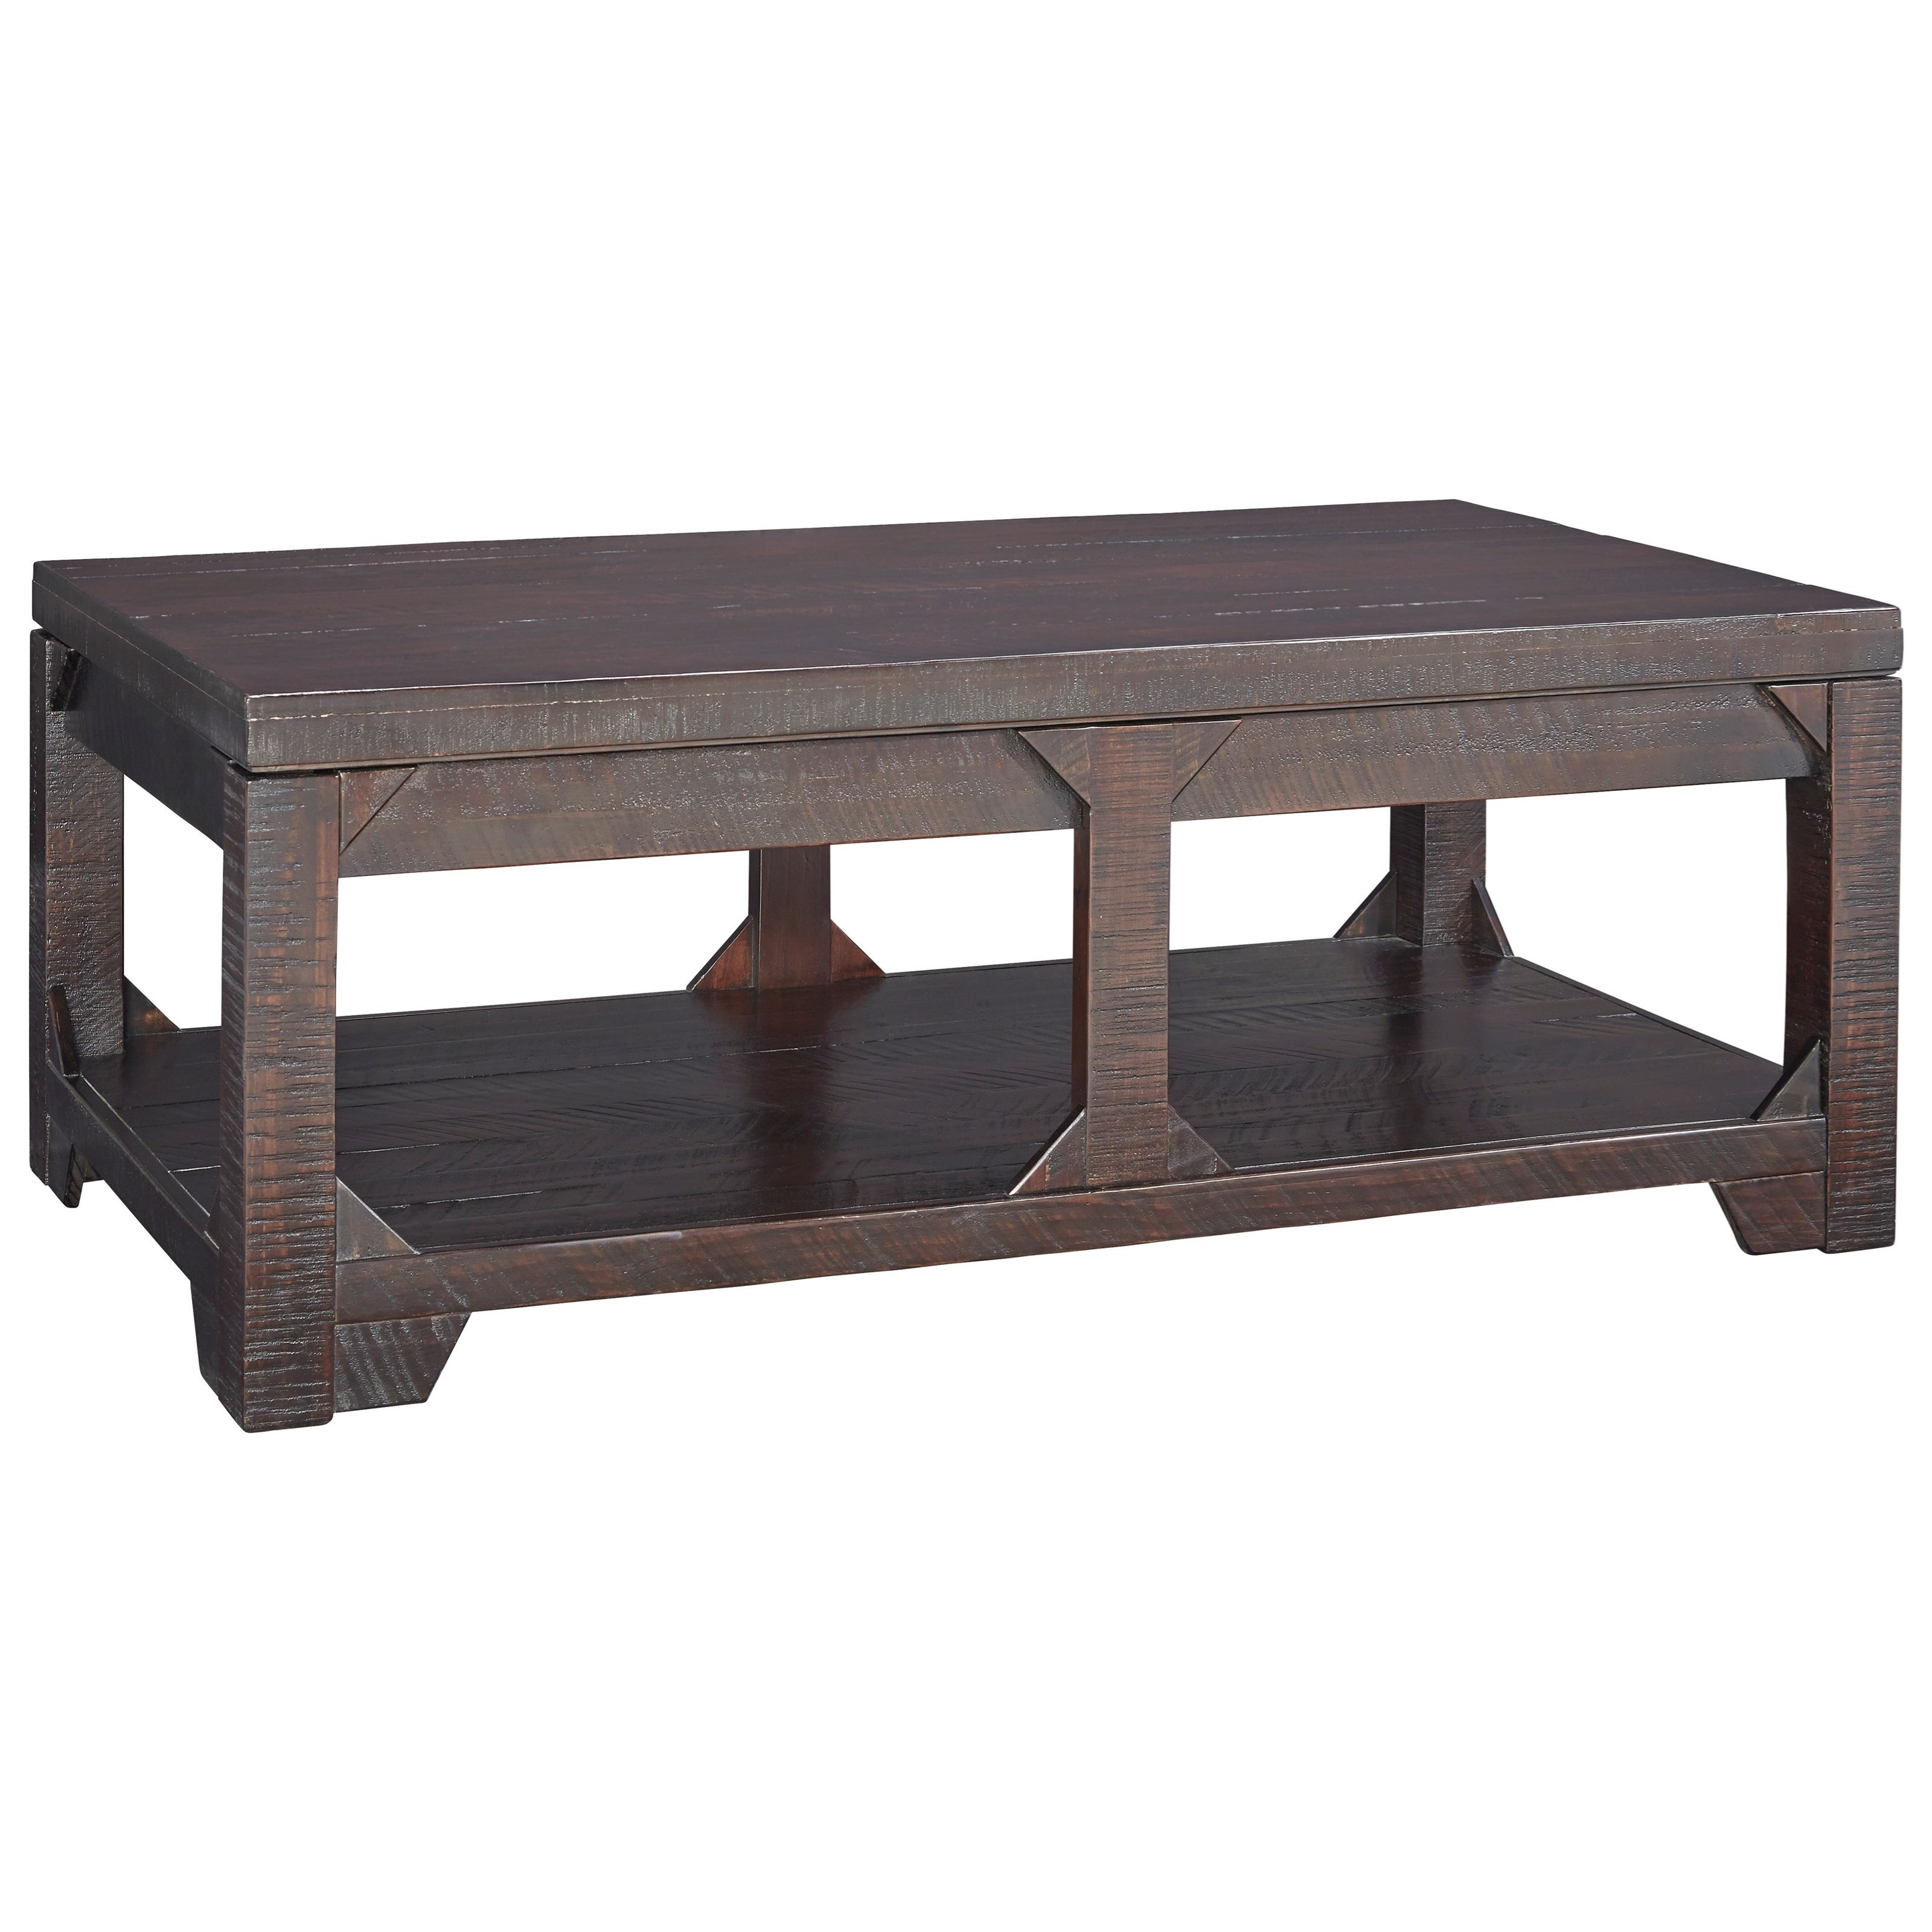 Signature Design by Ashley Rogness Rustic Lift Top Cocktail Table